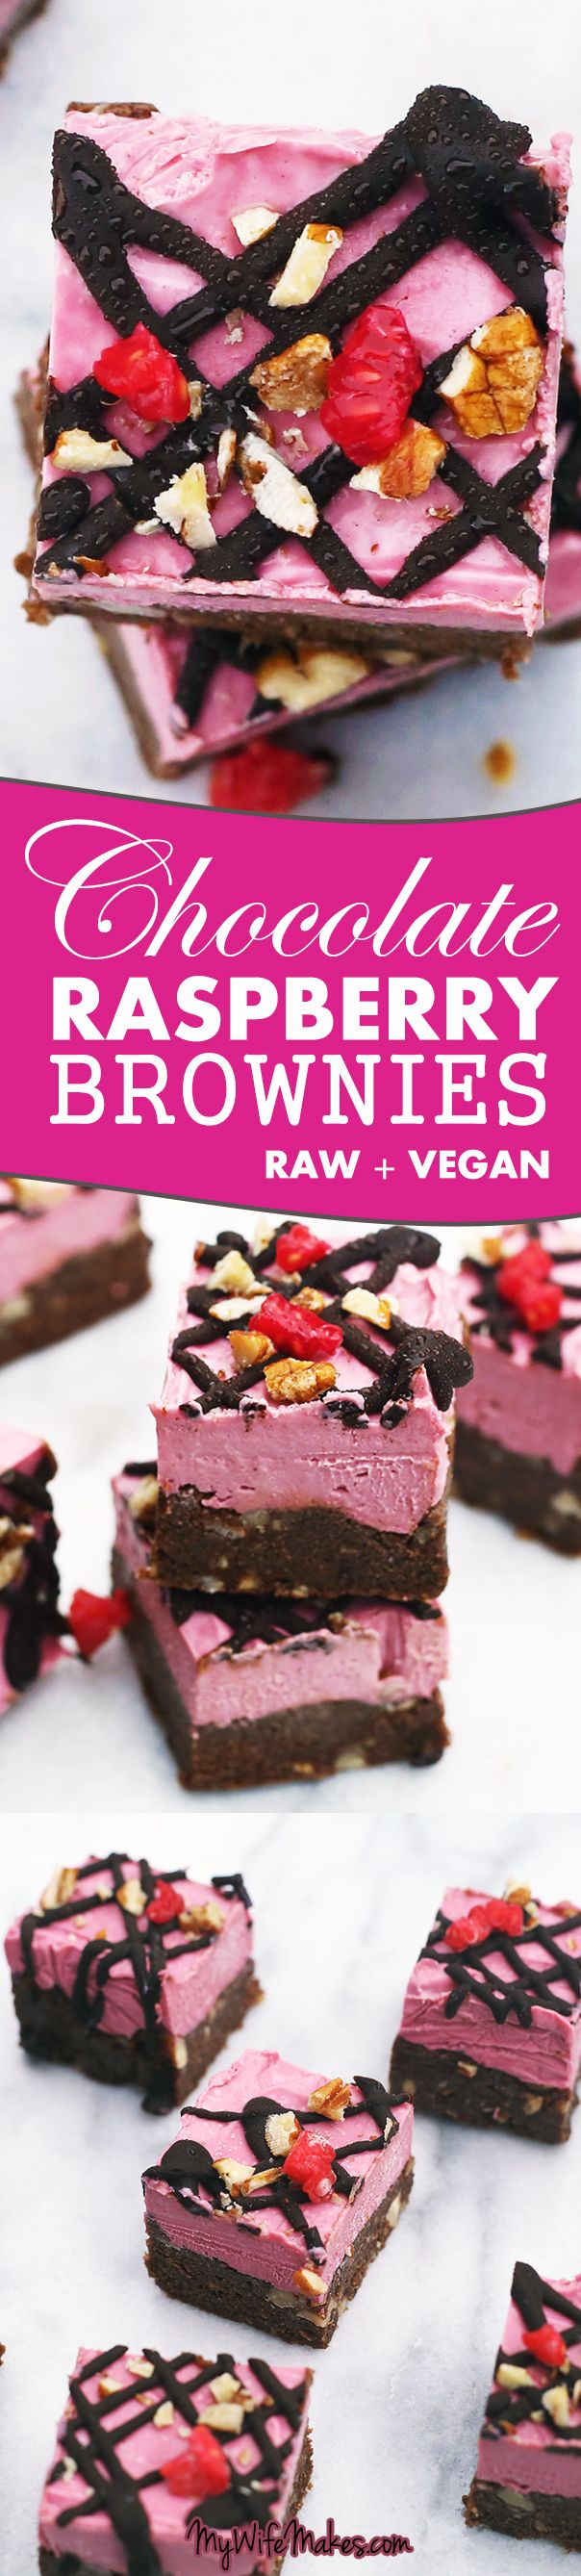 Raw Chocolate Raspberry Brownies made up of a raw chocolate brownie base, filled with delicious nuts, and topped with creamy raw raspberry cheesecake